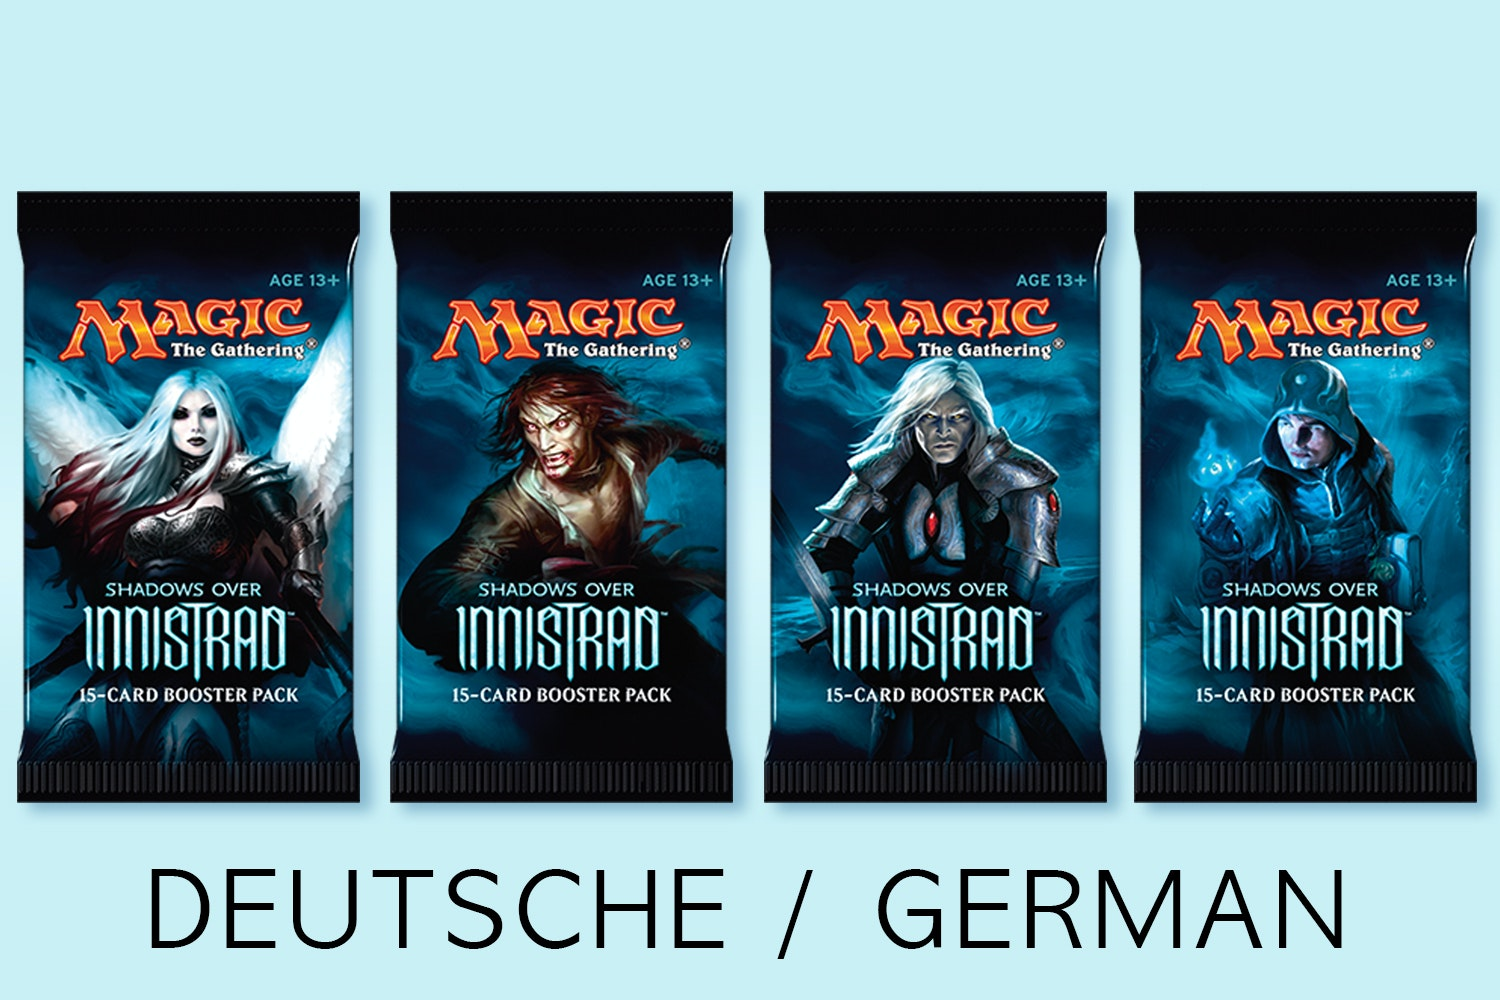 Shadows Over Innistrad in German